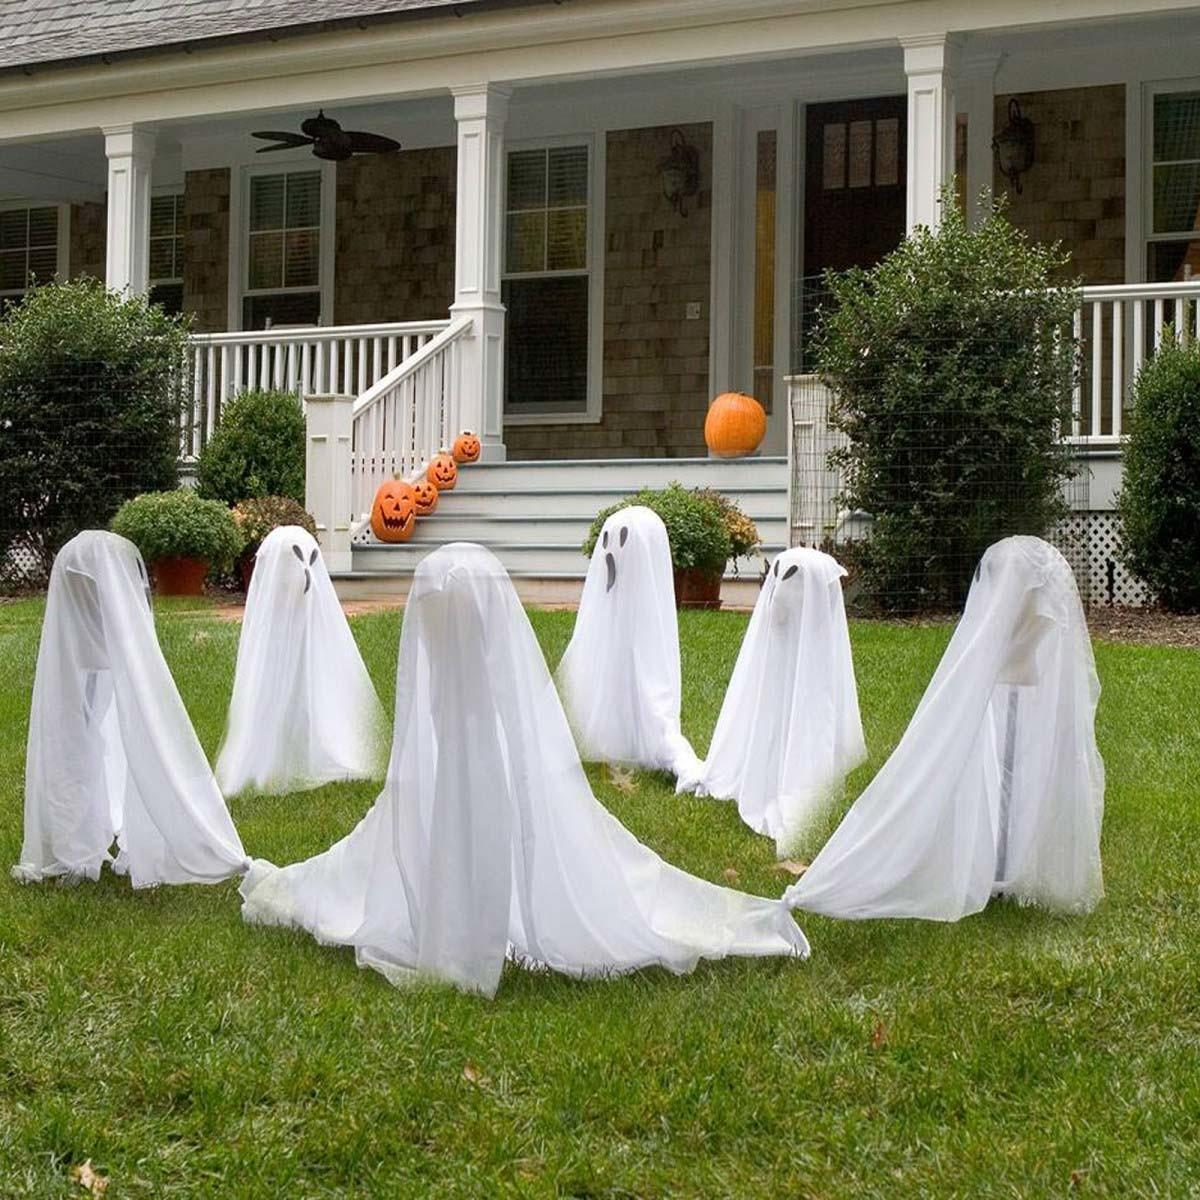 Spookiest Halloween Decoration Ideas